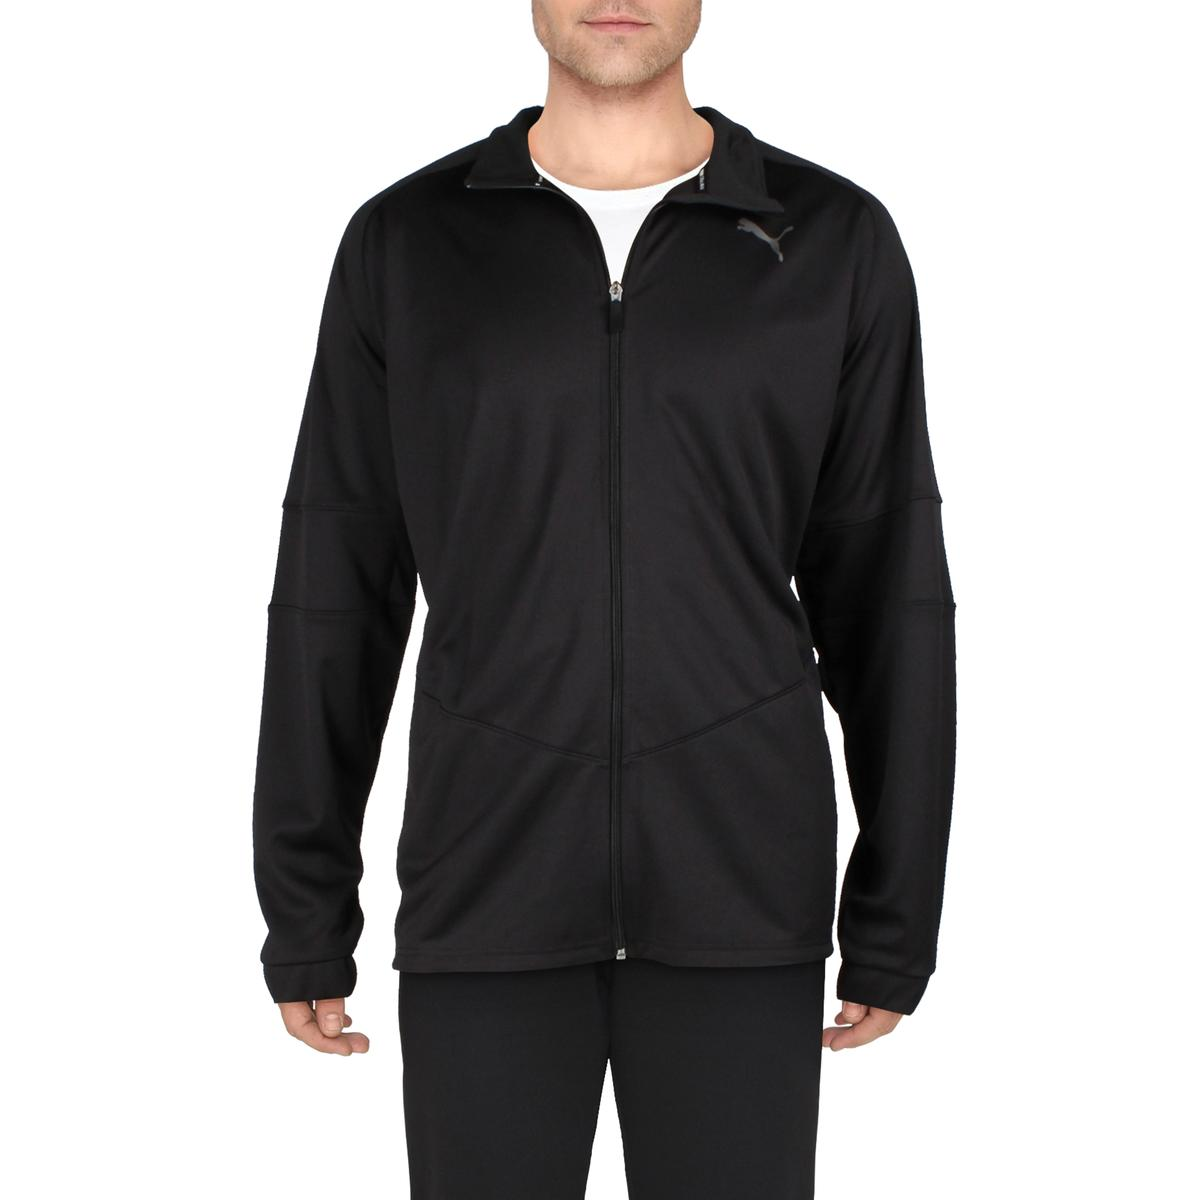 Ideology Mens Blue Fitness Work Out Track Jacket Athletic XXL BHFO 7908